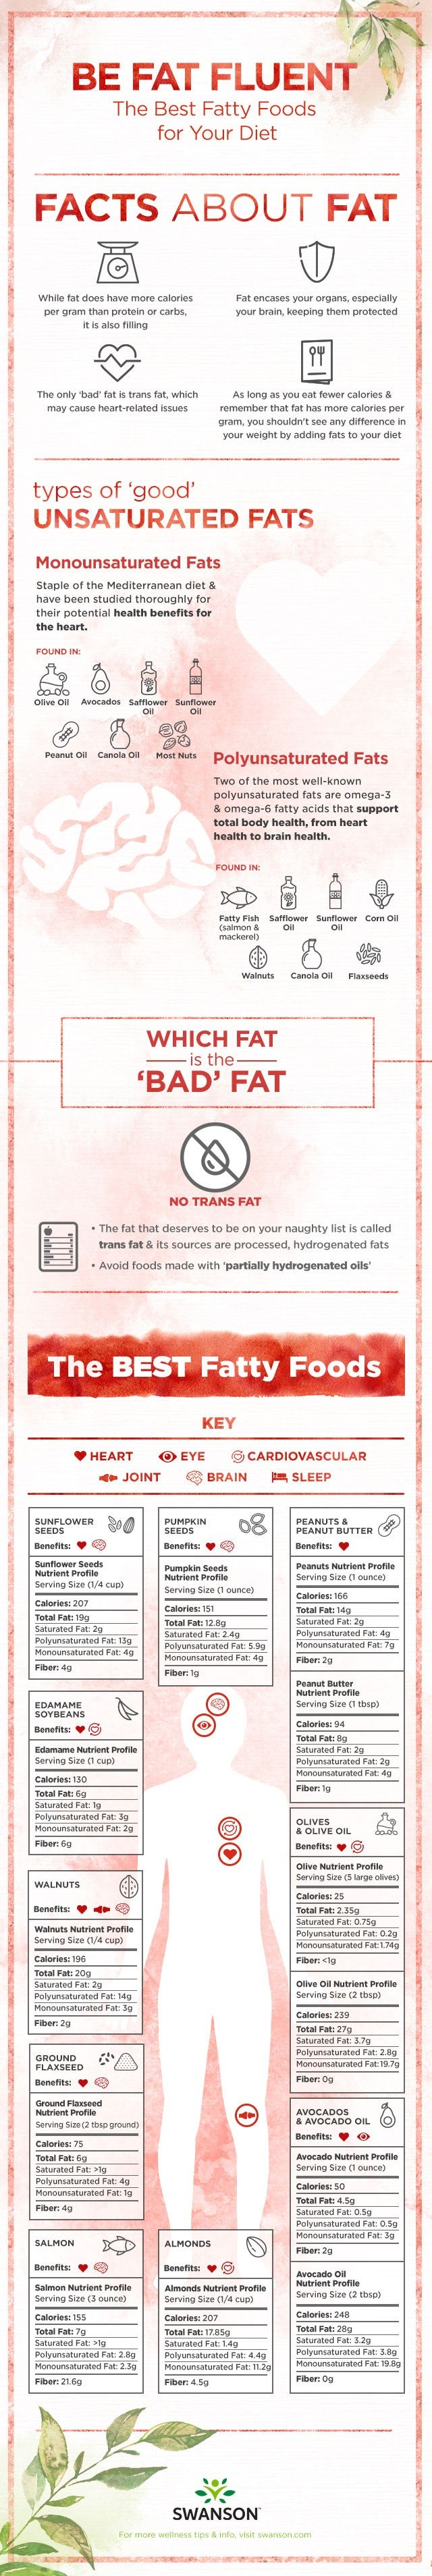 Be Fat Fluent Best Fatty Foods for Your Diet, list of good fatty foods